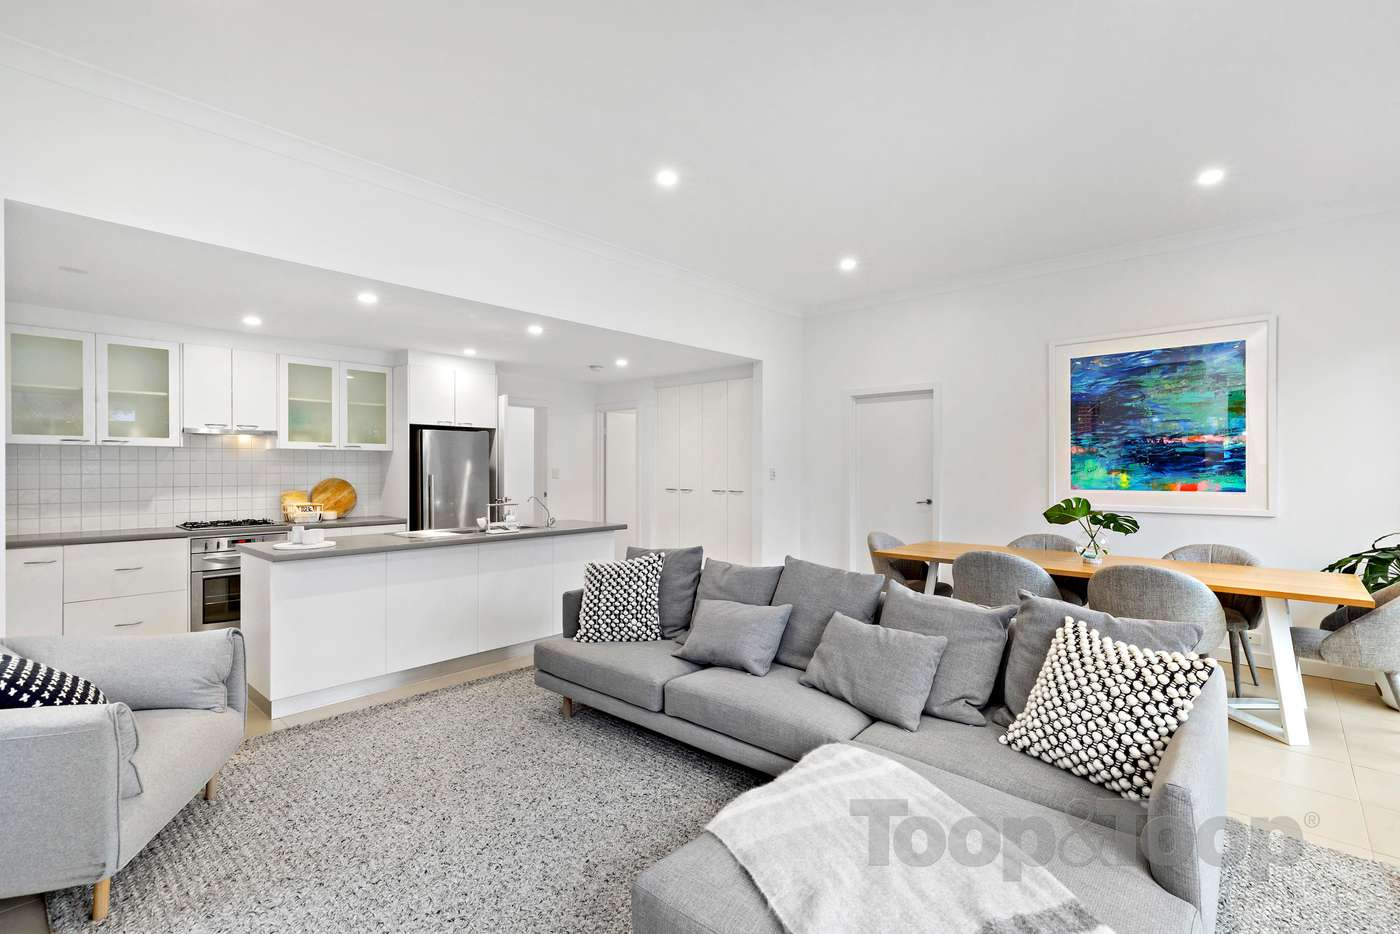 Fifth view of Homely house listing, 27 Dorset Avenue, Colonel Light Gardens SA 5041